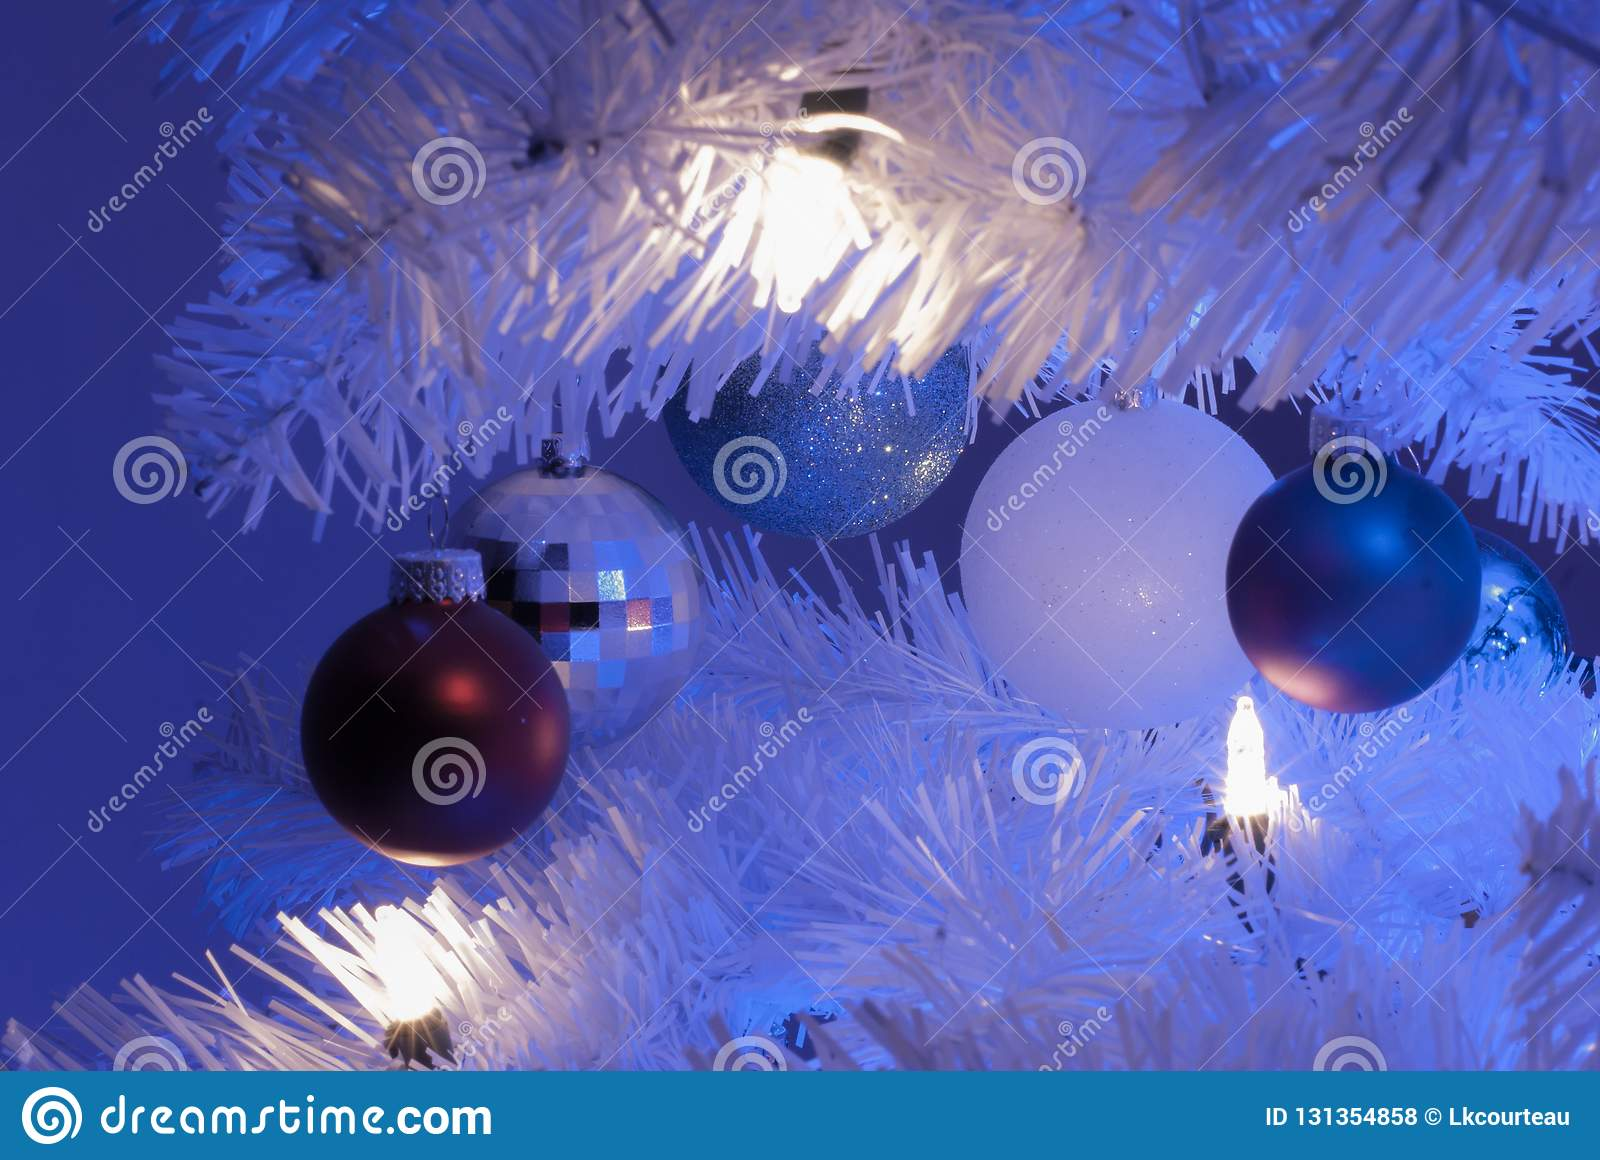 White Christmas Tree With Blue Lights.Close Up Of 5 Ornaments In White Christmas Tree With White